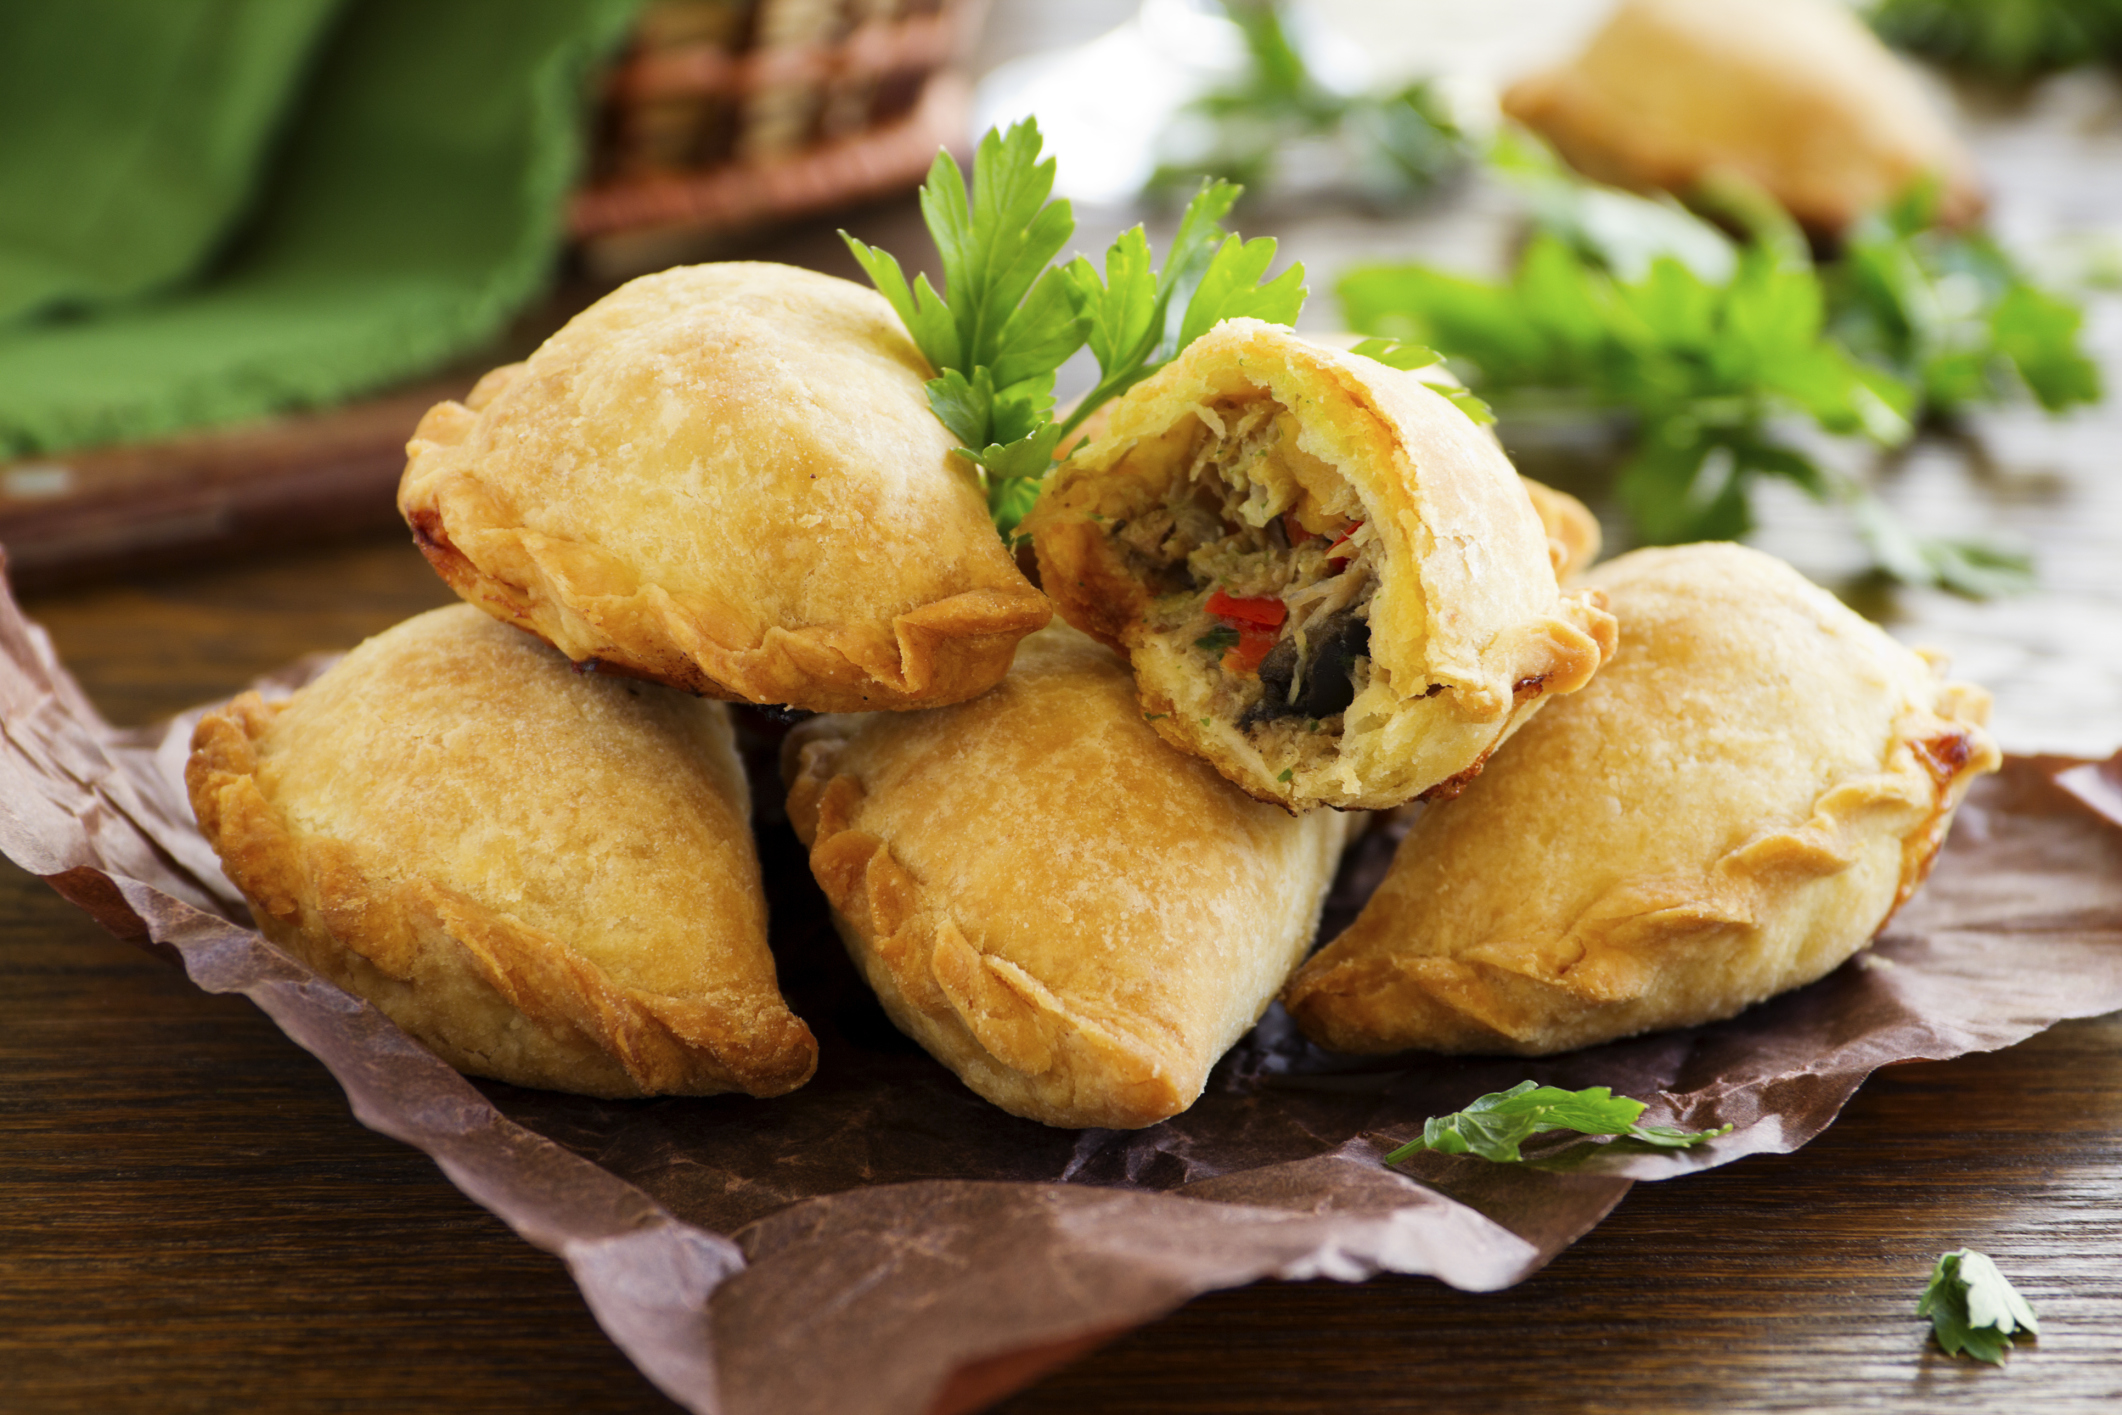 A versatile pocket food: Empanadas get attention during April (Recipes)